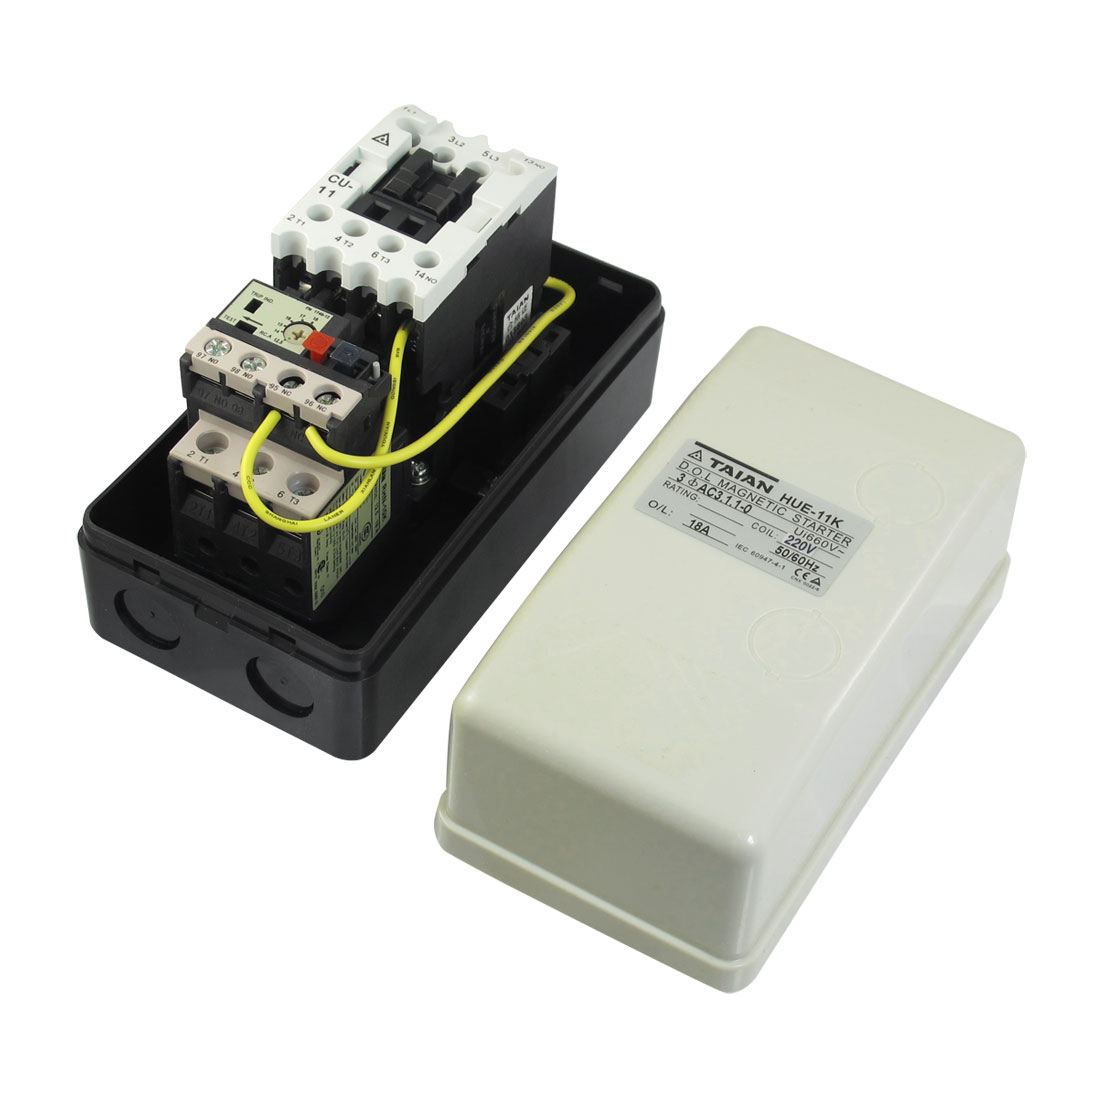 220V Coil AC Contactor 3 Pole Magnetic Starter Motor Control 12.5-18A